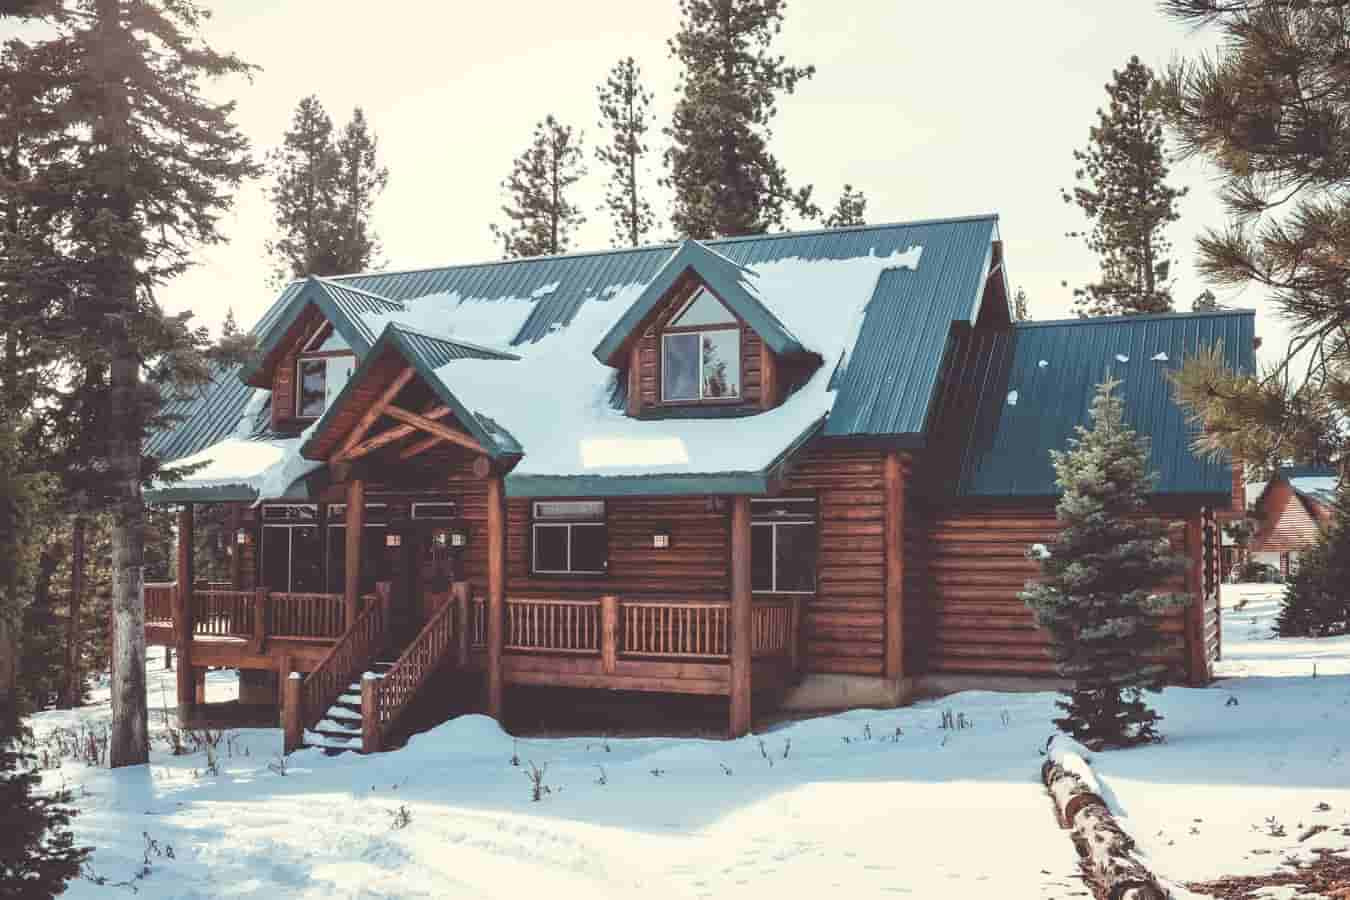 Image | cabin in the woods with snow